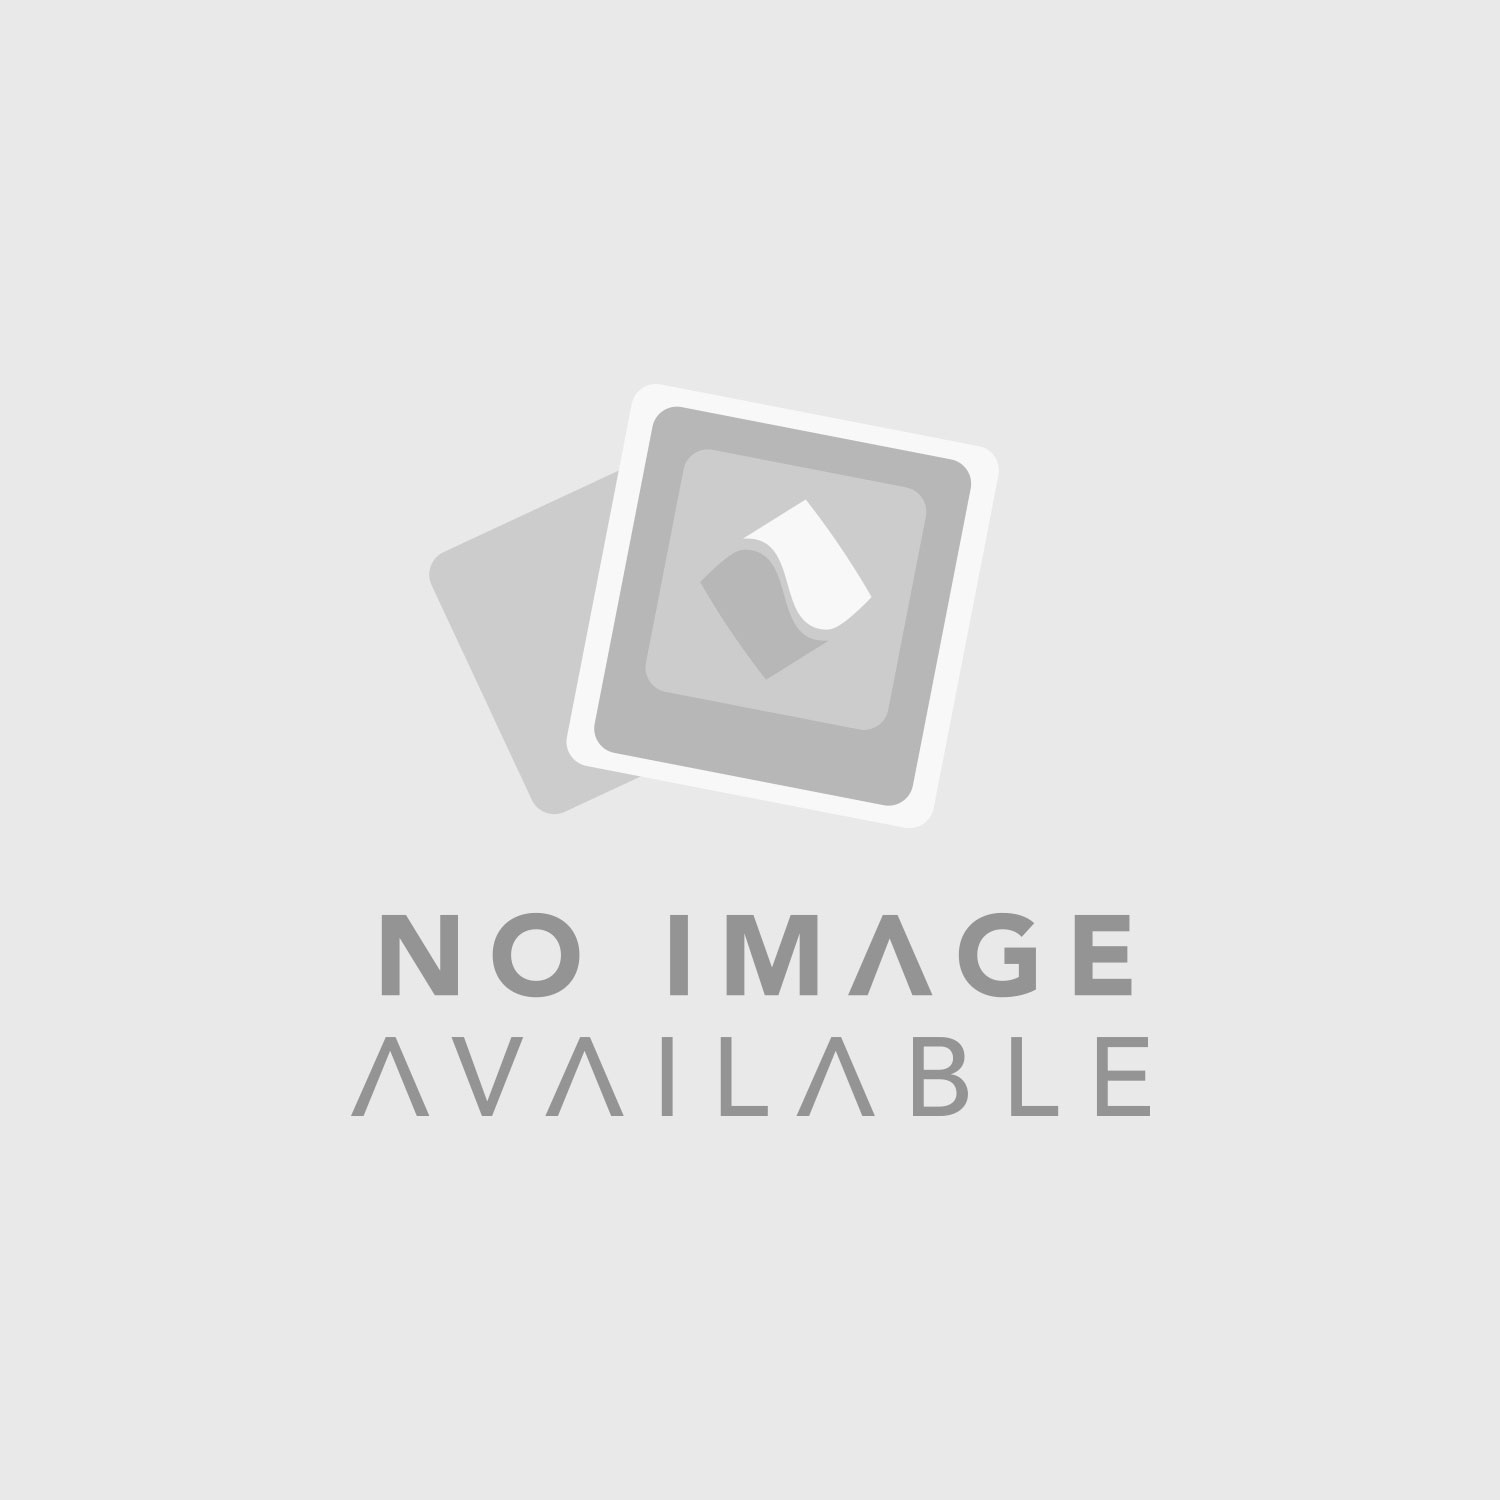 Pro Intercom AD920 Balanced/Unbalanced Interface